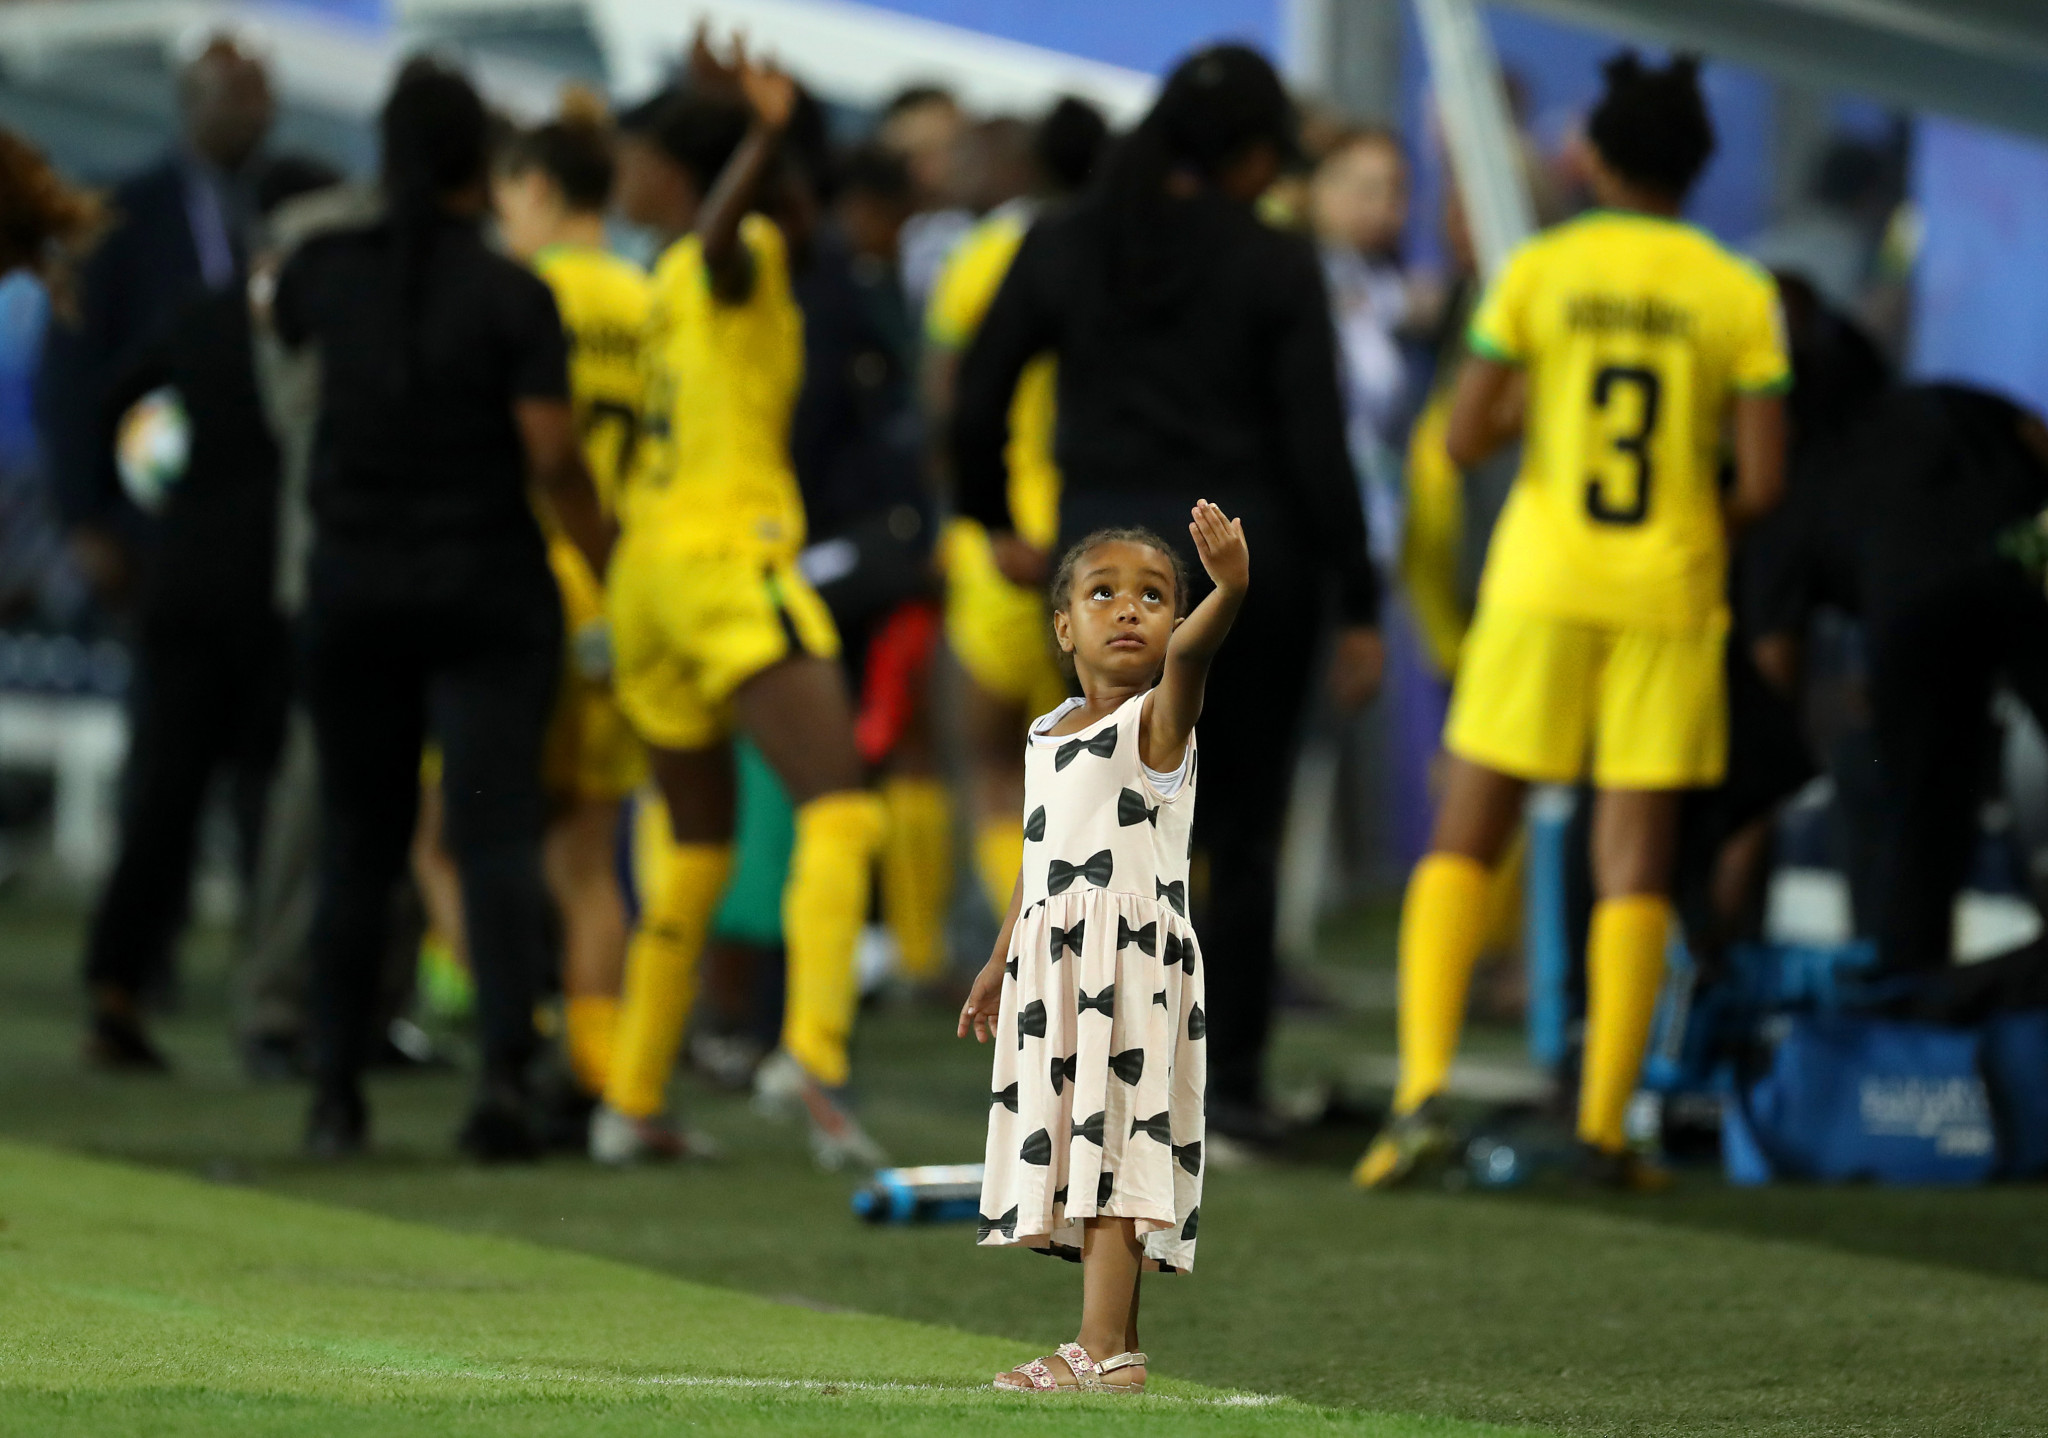 A child dances on the sidelines following Australia's victory over Jamaica ©Getty Images